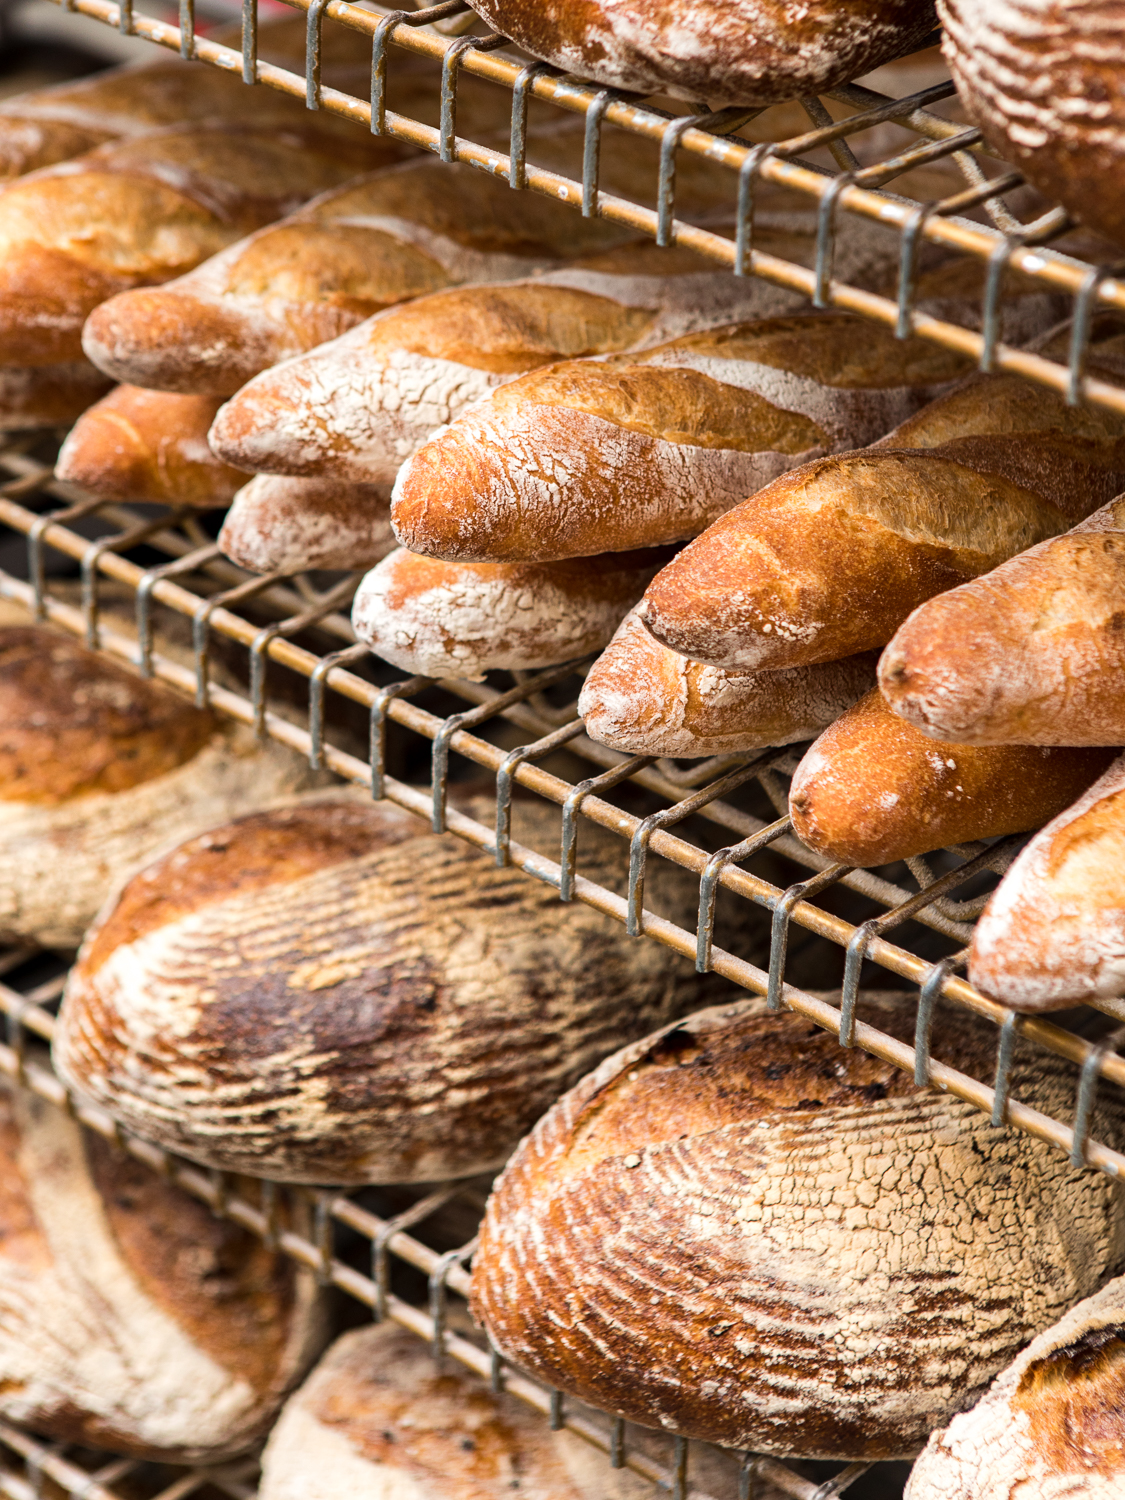 A picture of around a dozen round and baguette-style loaves on wire racks at Grand Central Bakery